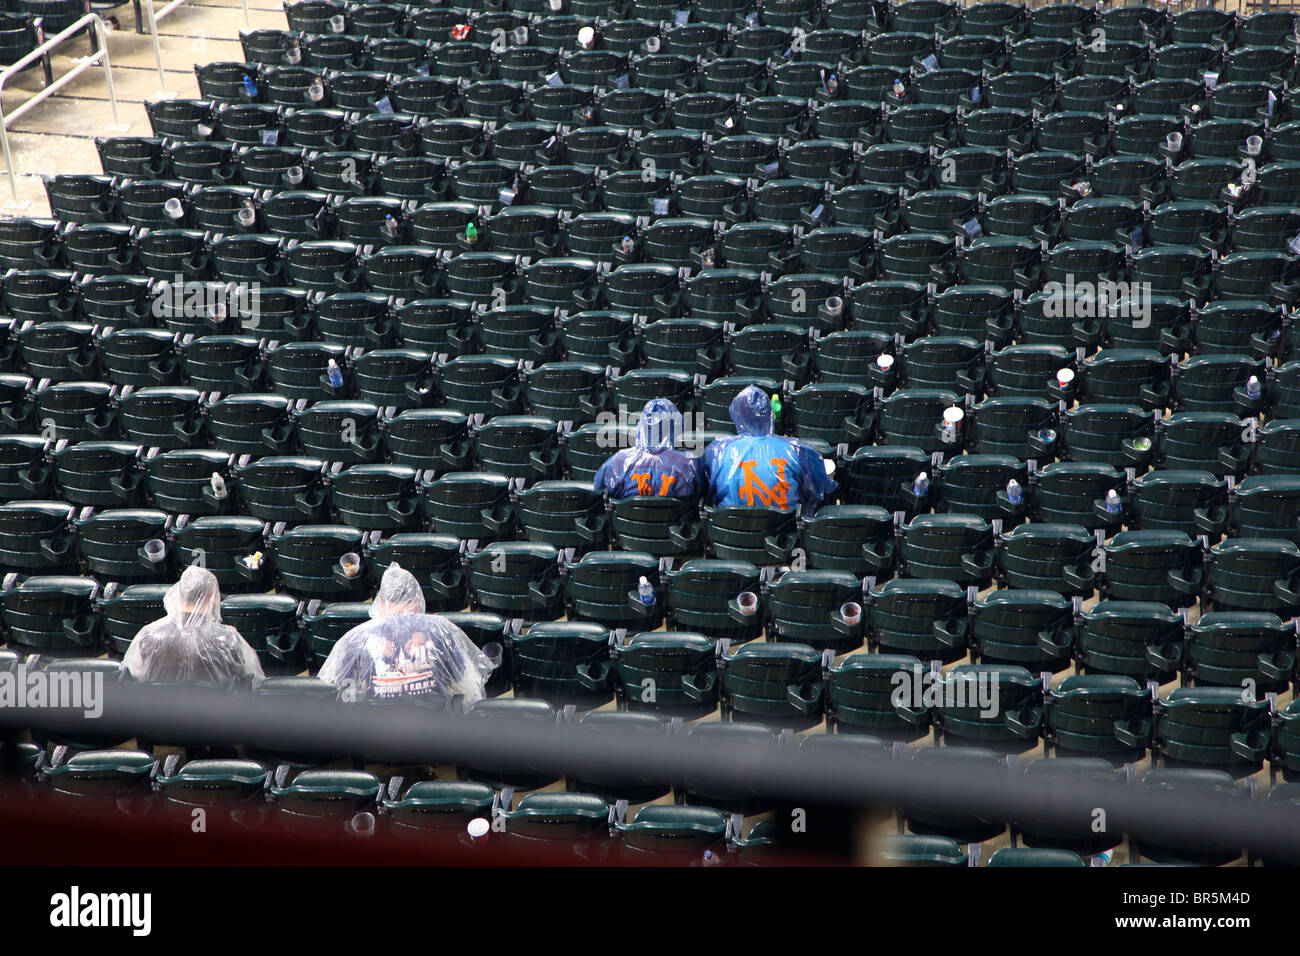 Mets fans sitting in the stand during a rain delay, Queens, NY, USA - Stock Image